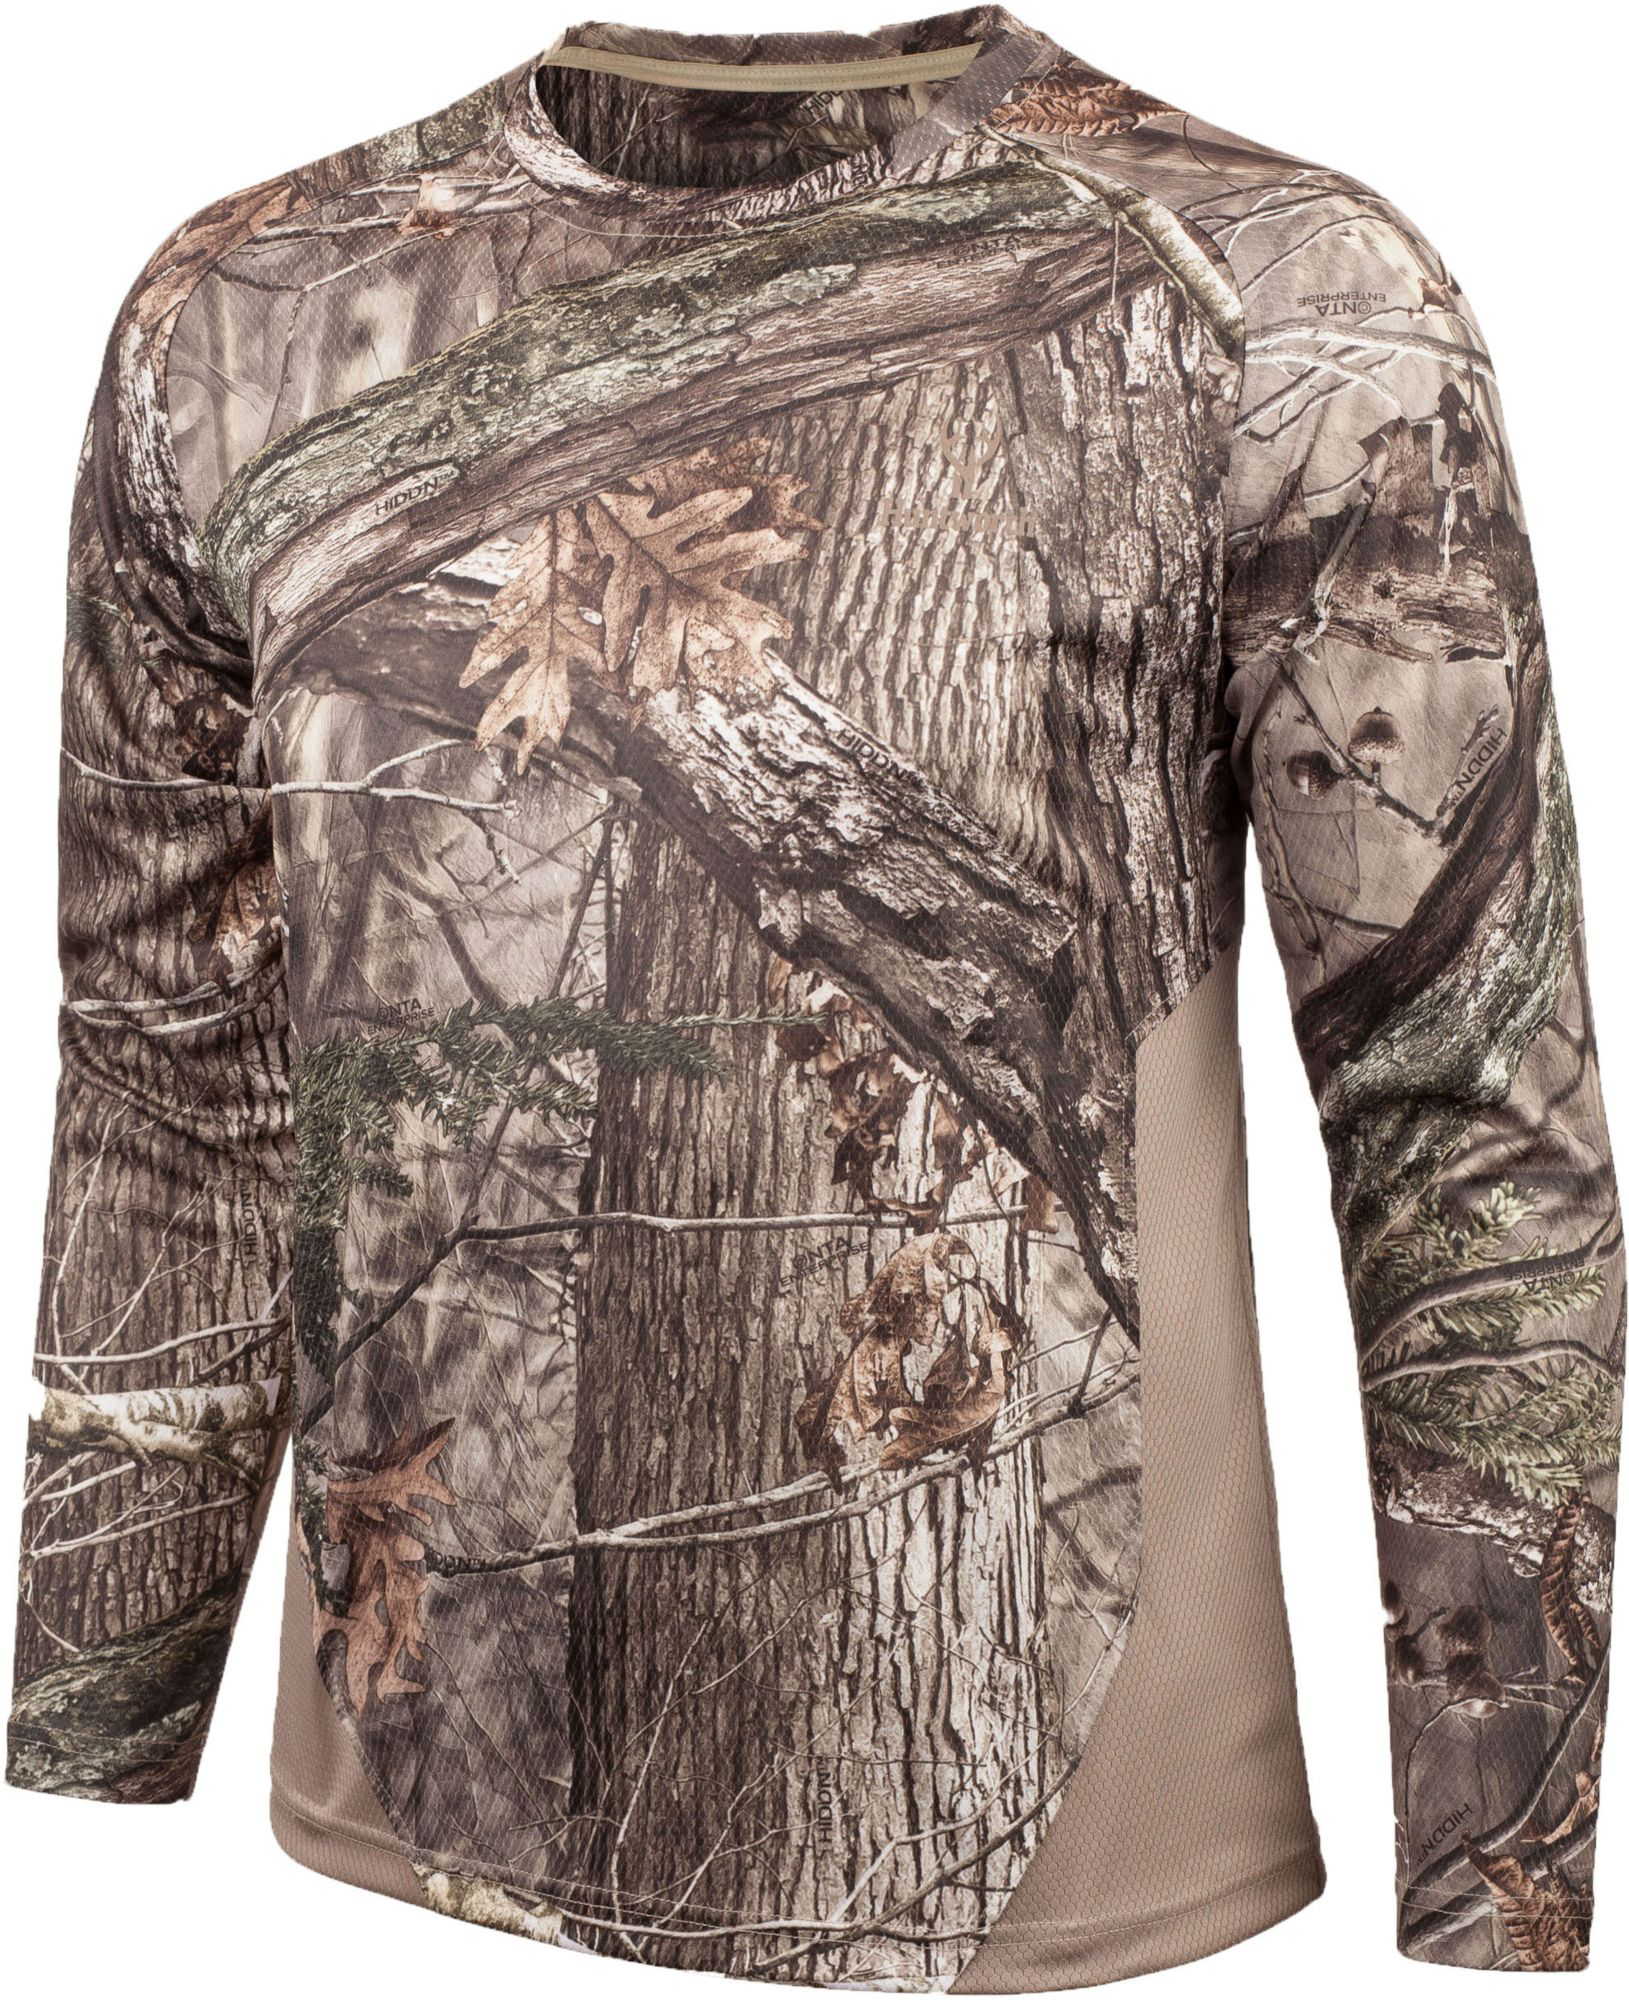 Huntworth Women's Long Sleeve Hunting Shirt, Size: Medium, Hidd N Camo thumbnail